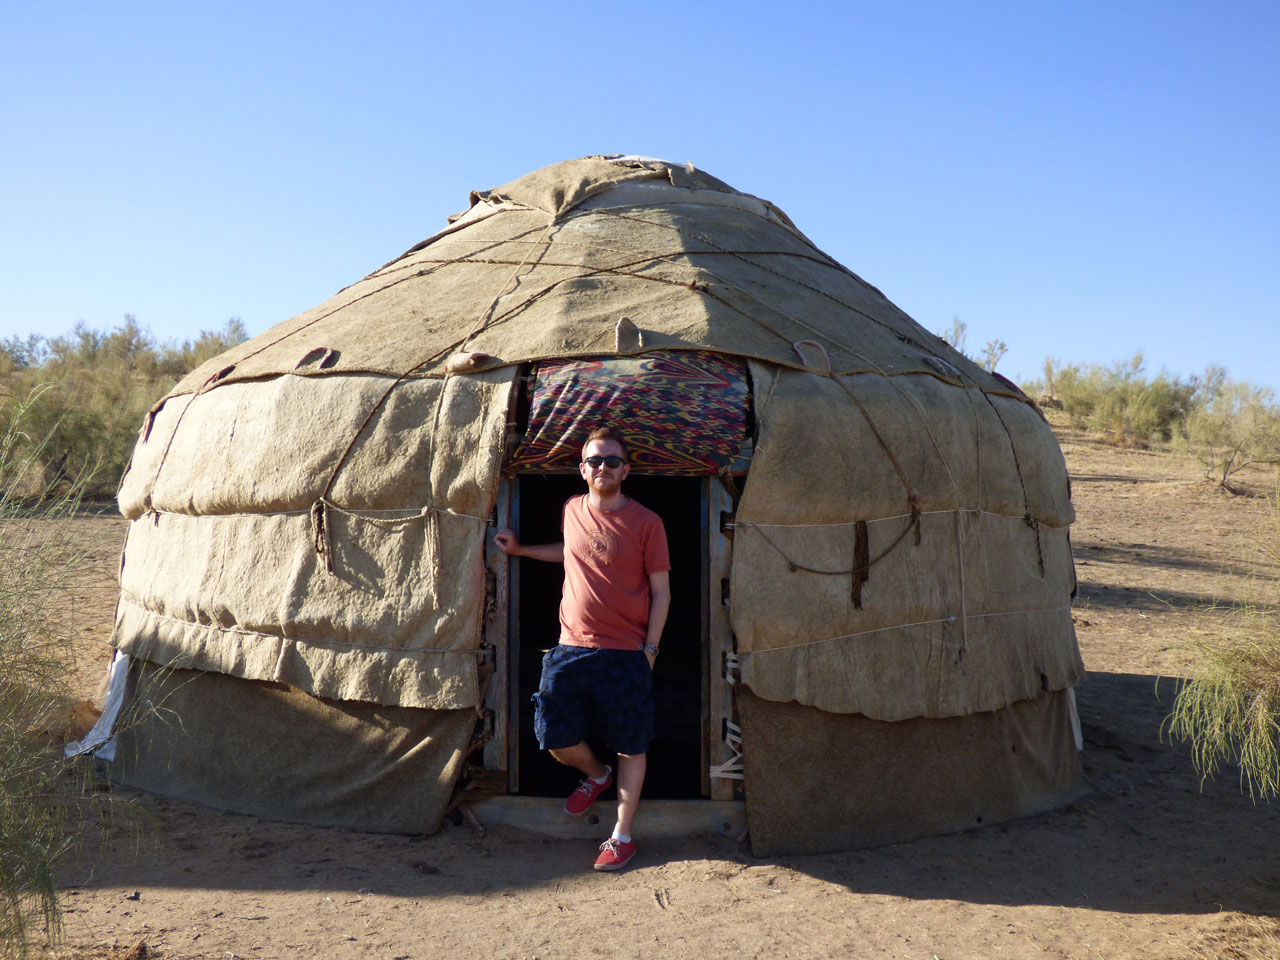 Our yurt at the Yangikazgan Desert Camp, Uzbekistan